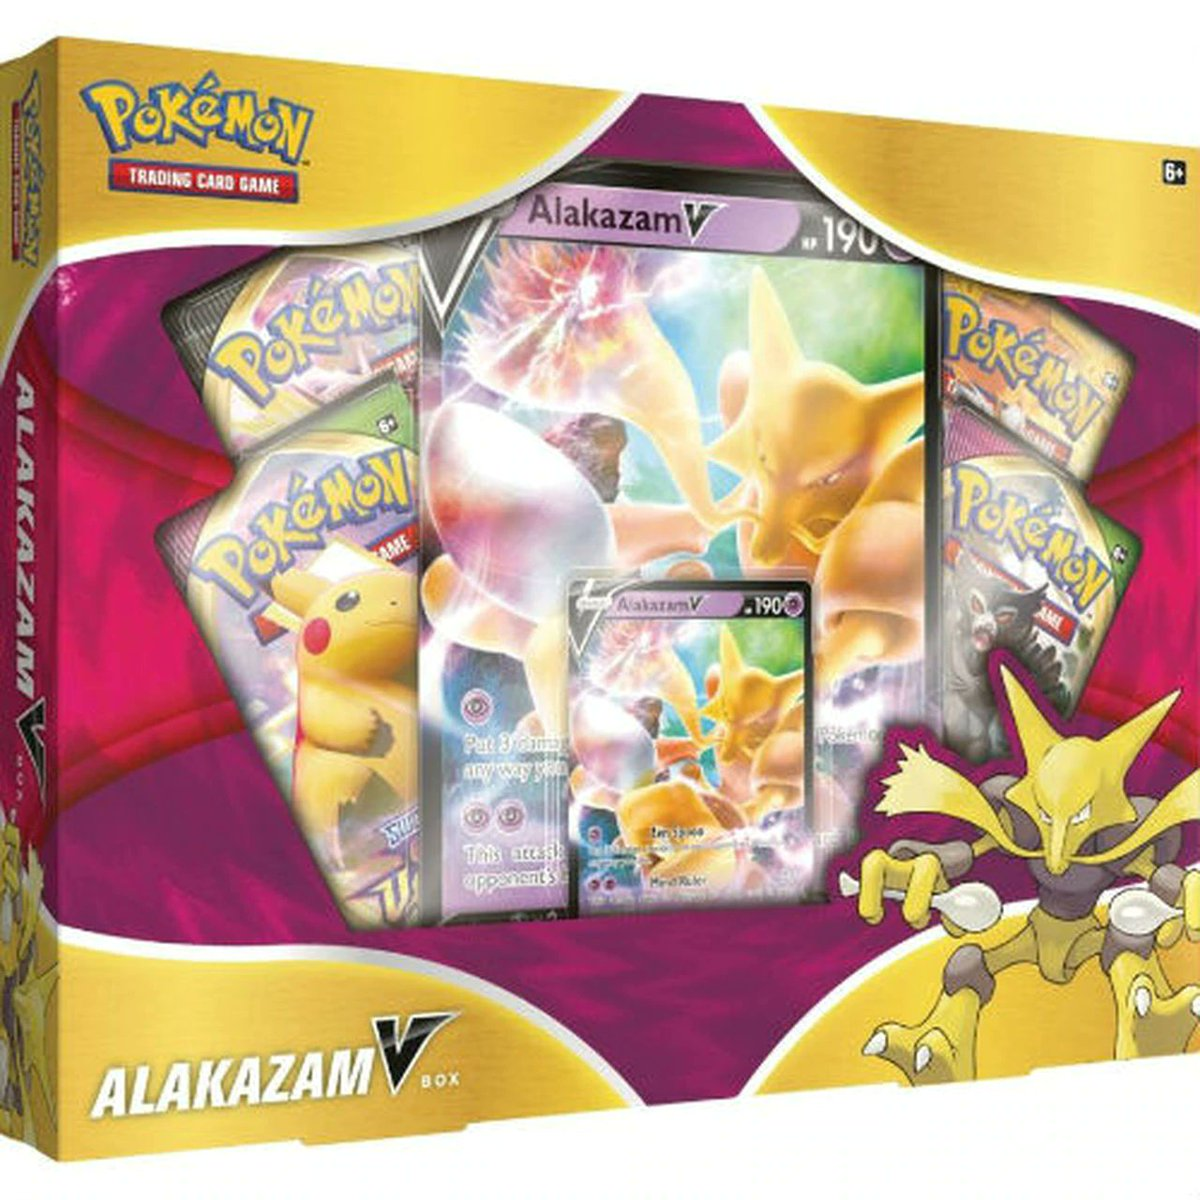 Pokemon - Alakazam V boxes in stock at Target for $19.99  I guess it's a deal, these boxes sell out fast for some reason    #pokemon #pokemontcg #pokemoncards #ptcgo #pokemongo #swsh #vividvoltage #crowntundra #pikachuv #alakazam #nintendo #pokemonsnap #tcg